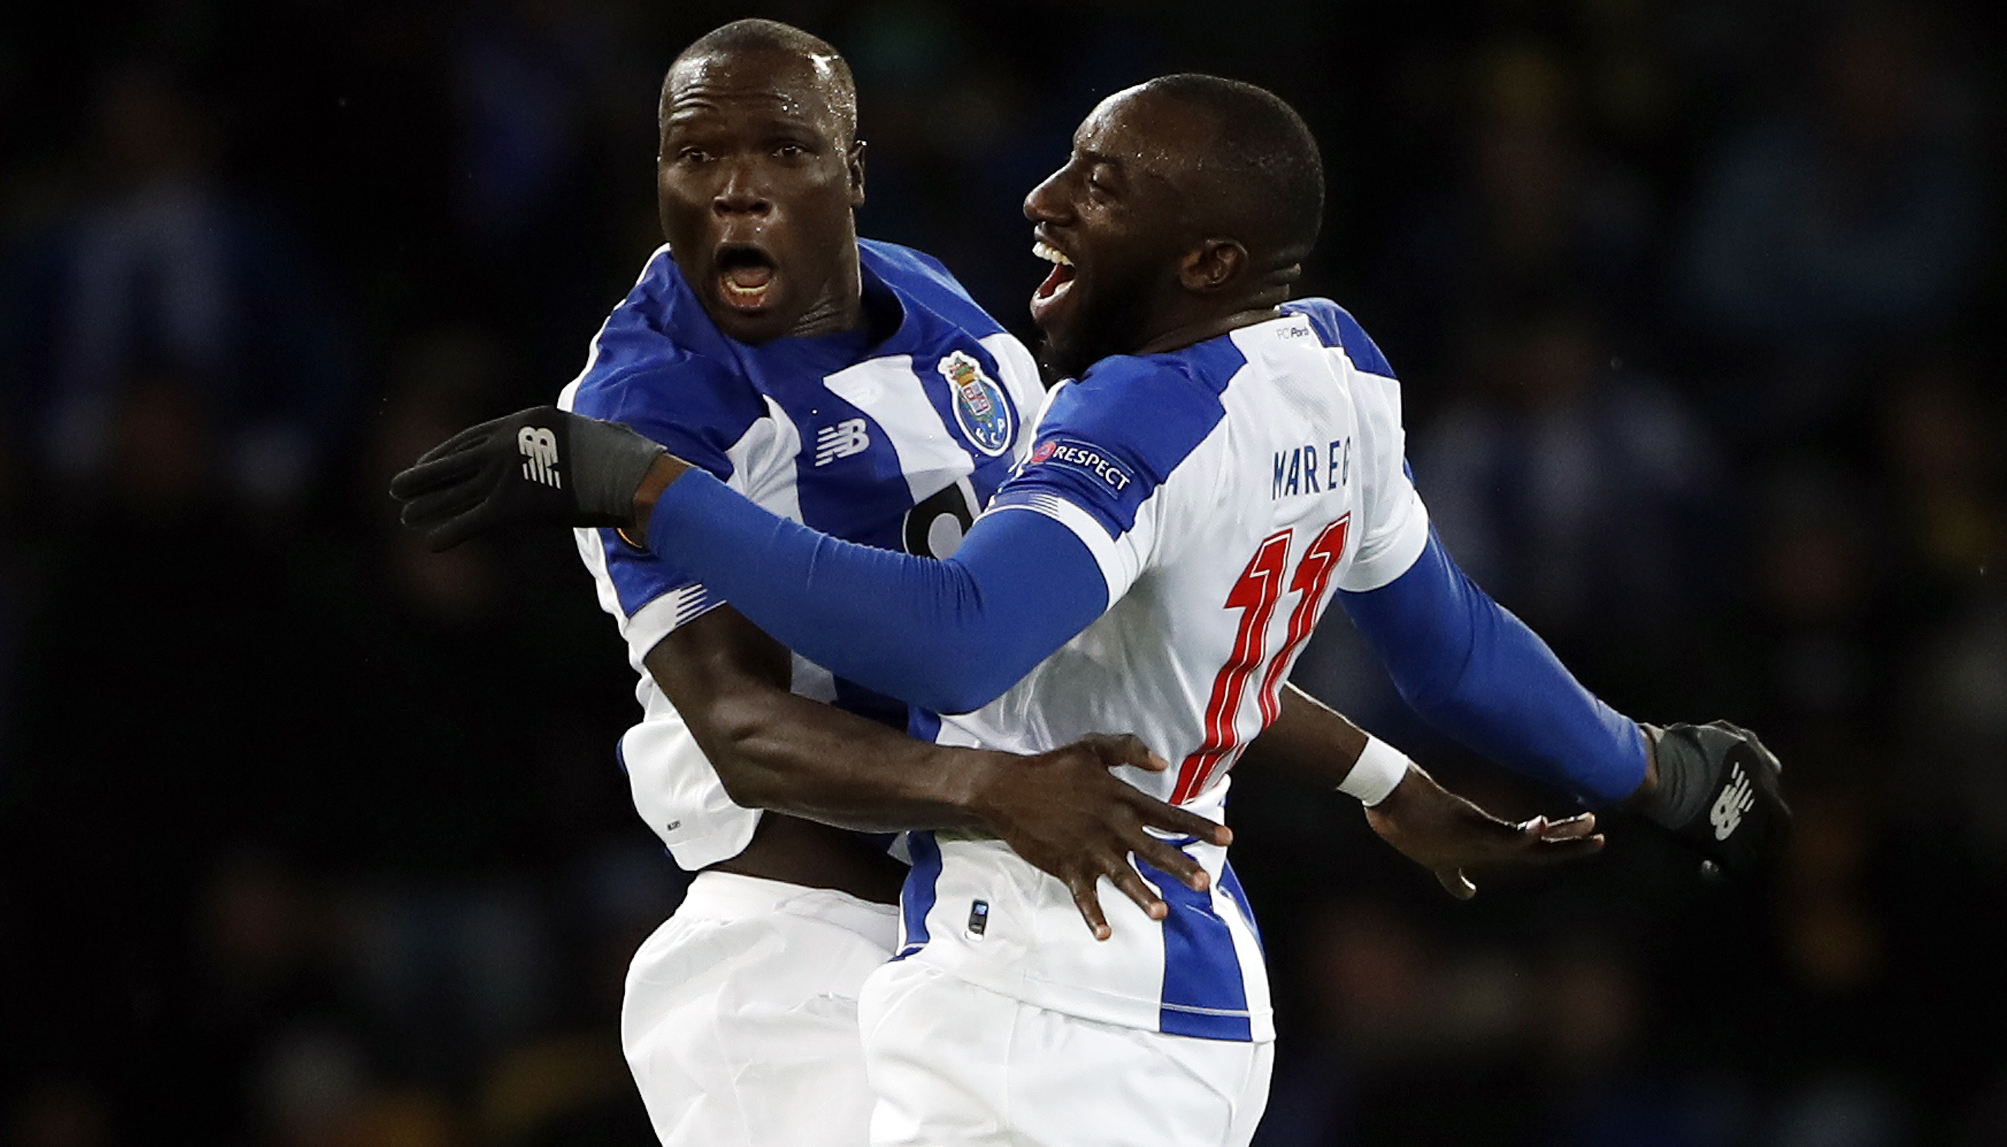 Porto vs Feyenoord: Dragons can roar into knockout rounds